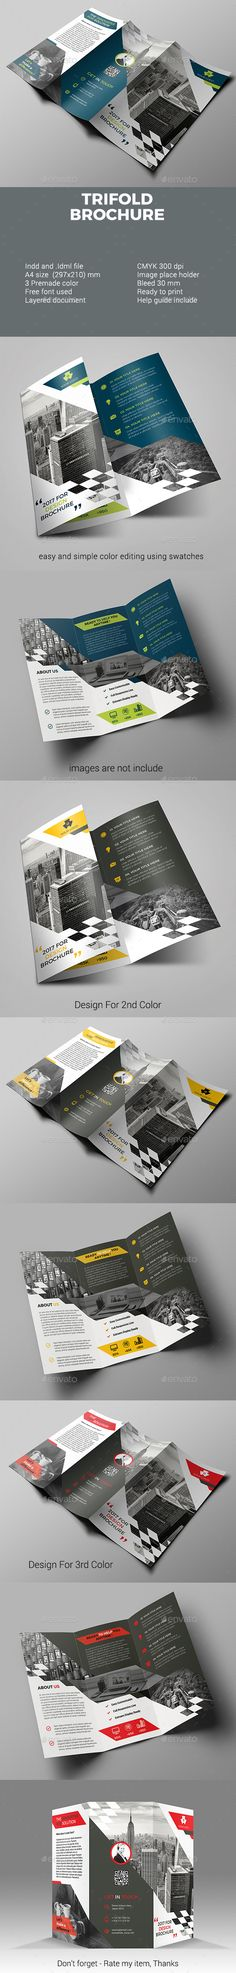 #Trifold #Brochure - #Corporate Brochures Download here: https://graphicriver.net/item/trifold-brochure/19706982?ref=alena994